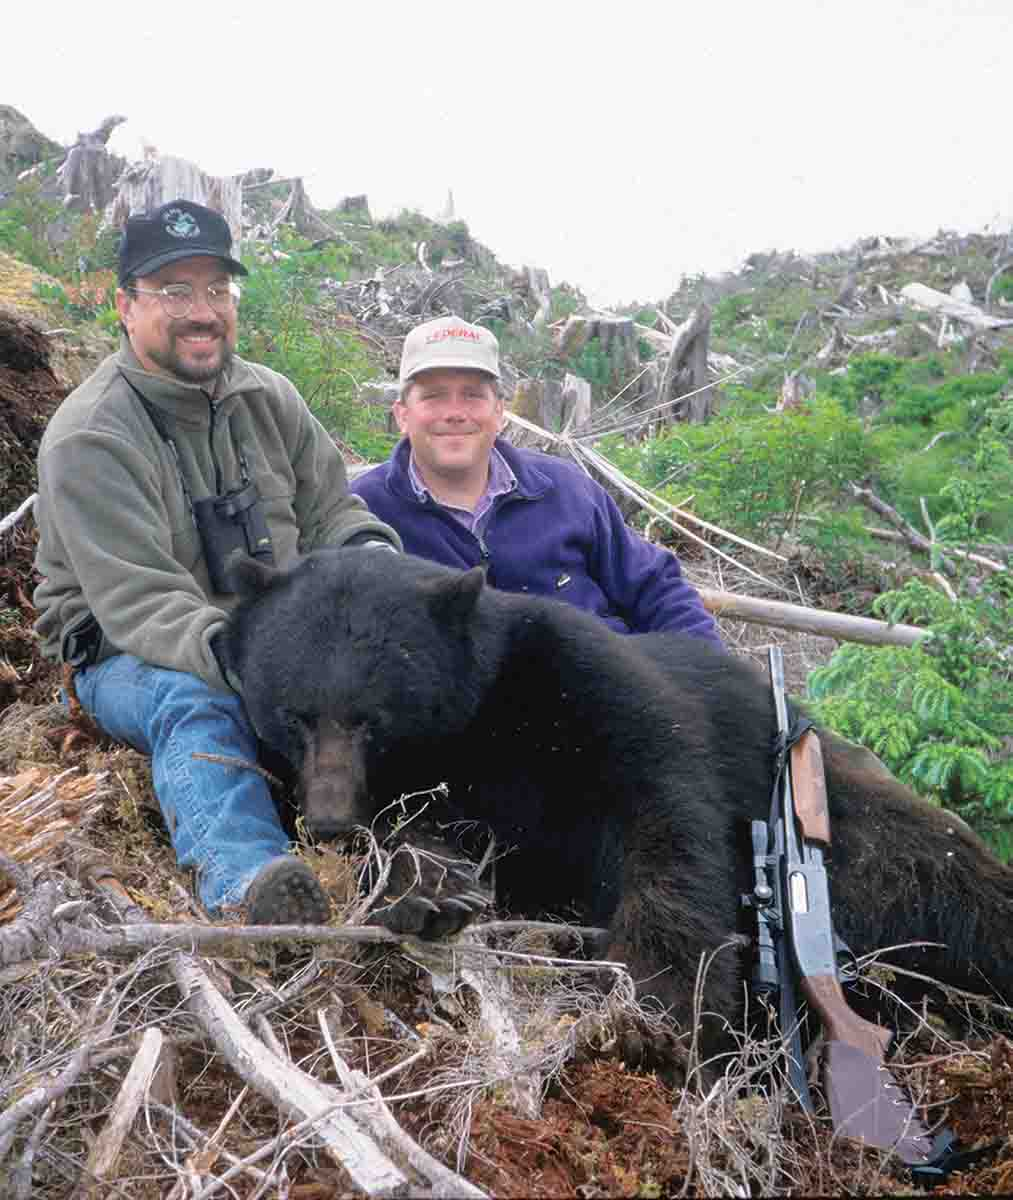 Few hunters refer to slug guns as big-bore rifles, but they are. John took this Vancouver Island black bear with a Federal slug from his old 870 Remington, with a bore diameter of over .70 caliber.